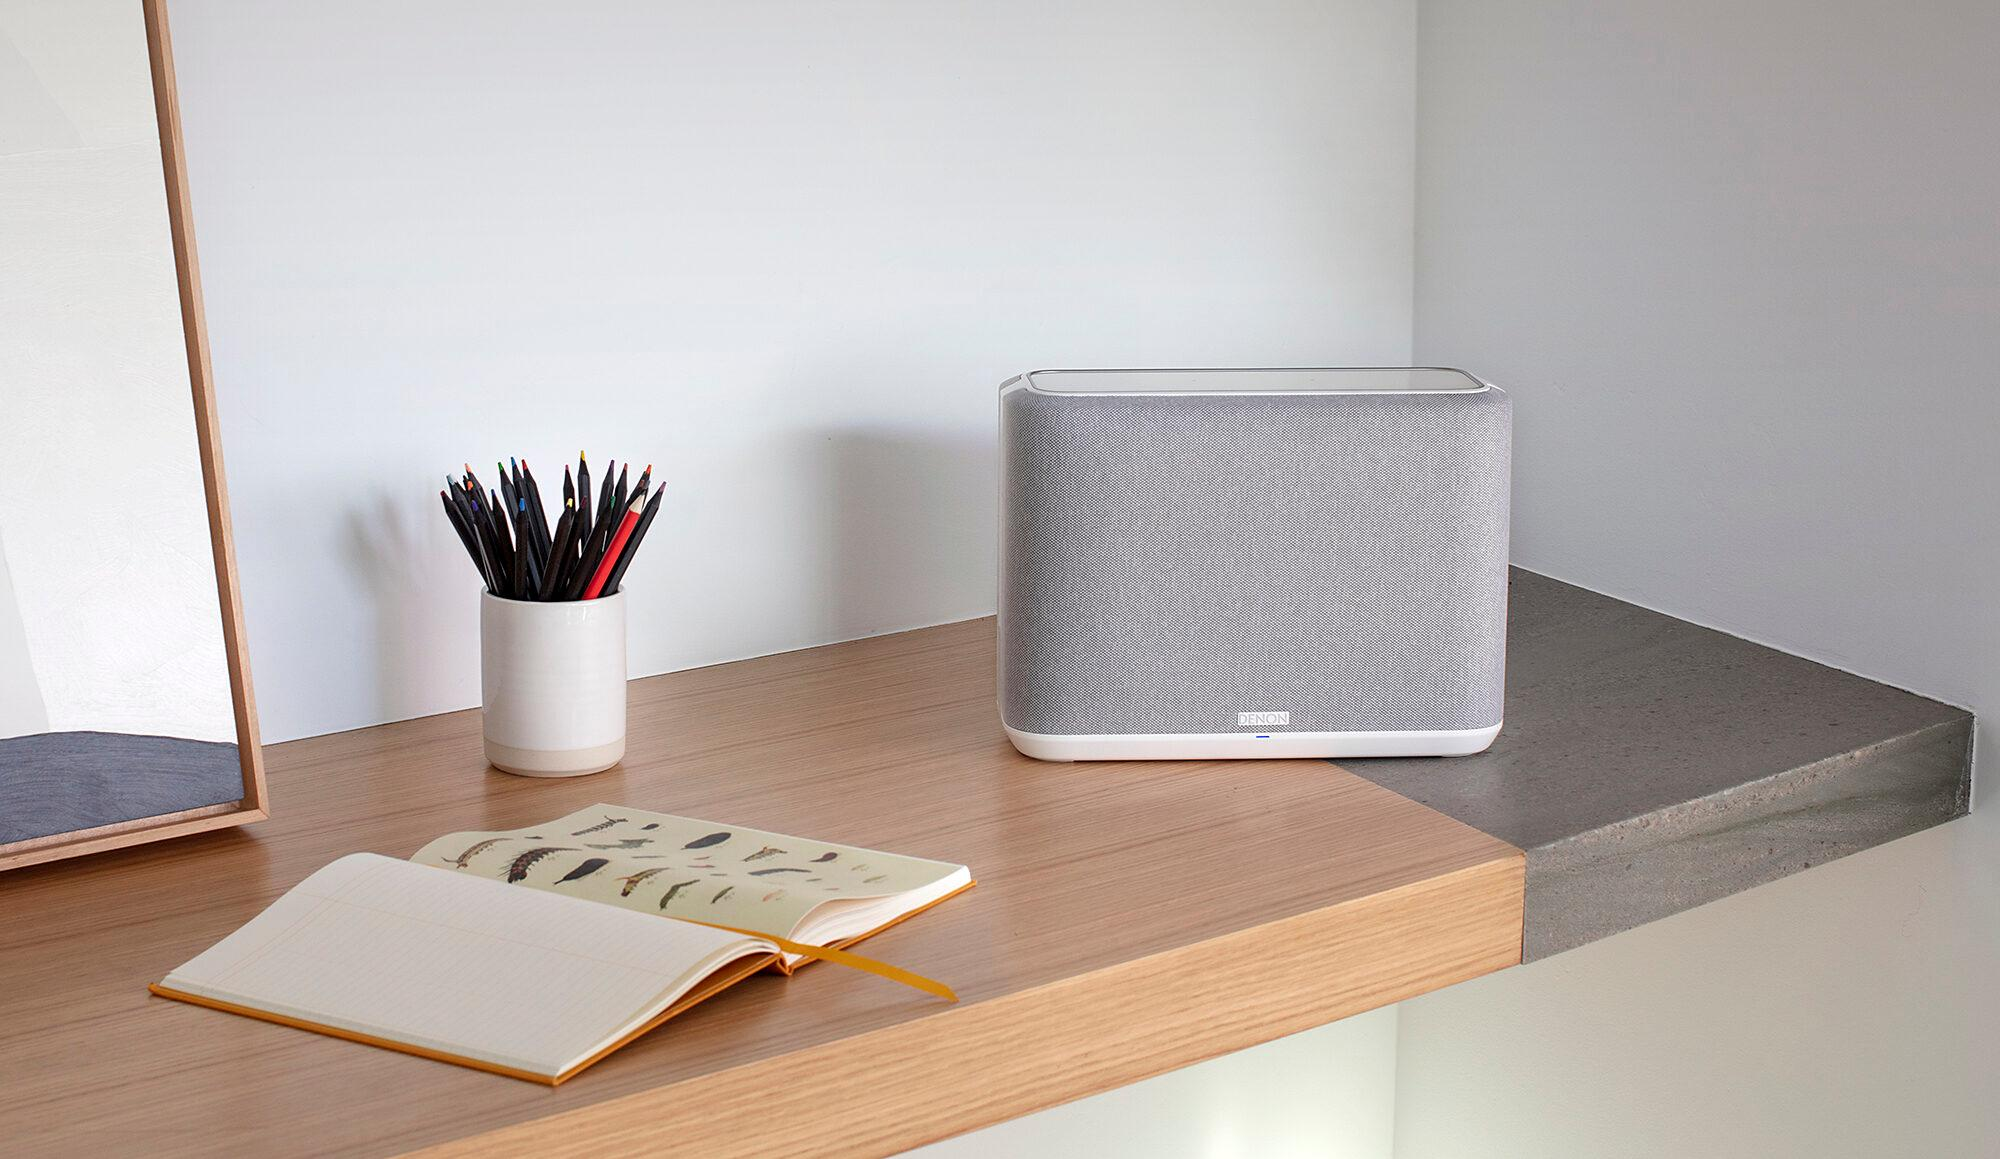 The current generation of Denon Home wireless speakers brings improved performance to the HEOS platform and quality sound to every corner of your home.